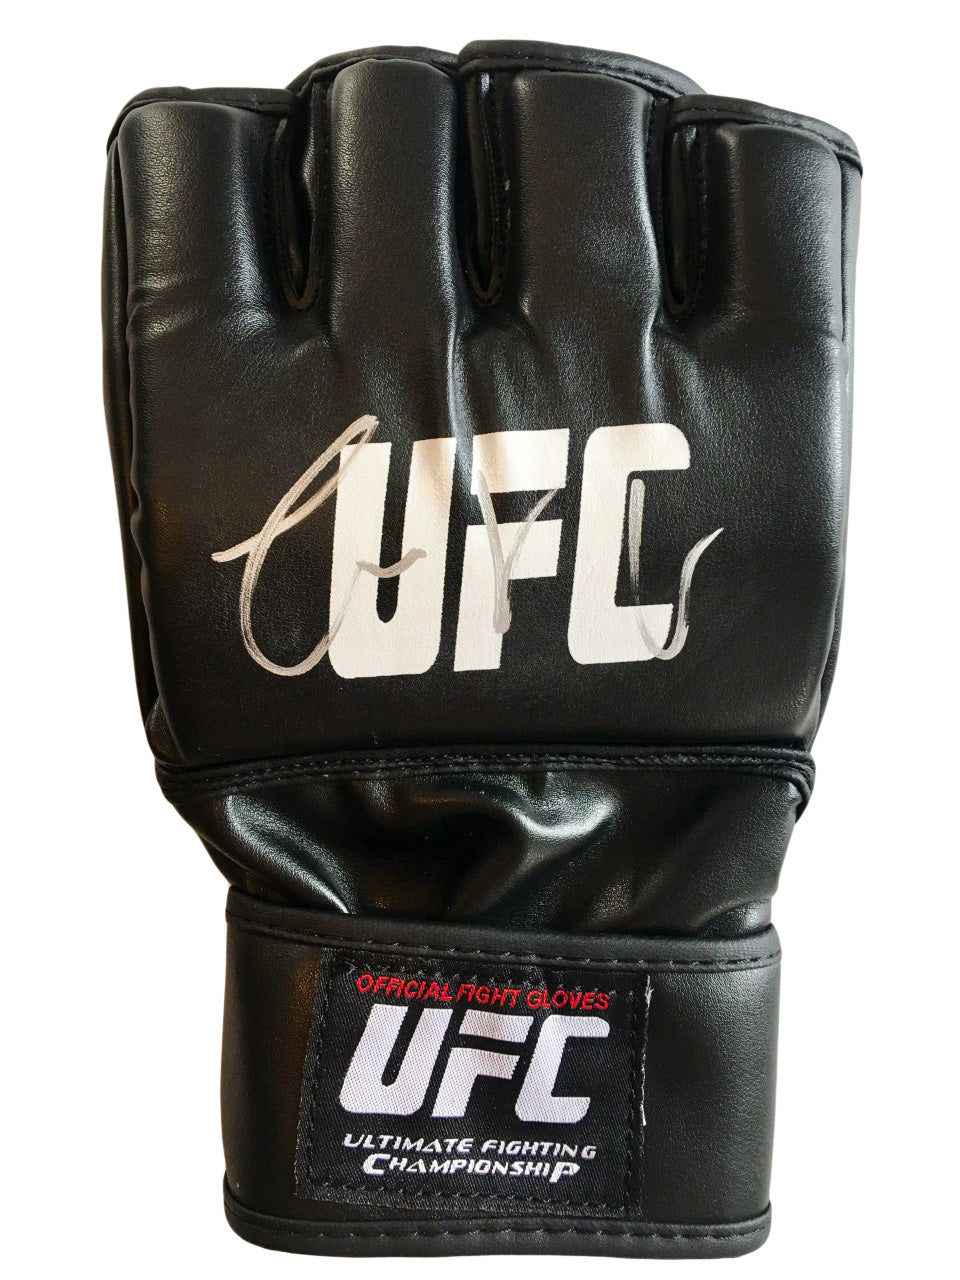 Conor McGregor Autographed UFC Gloves in a Silver Marker Size XX-Large